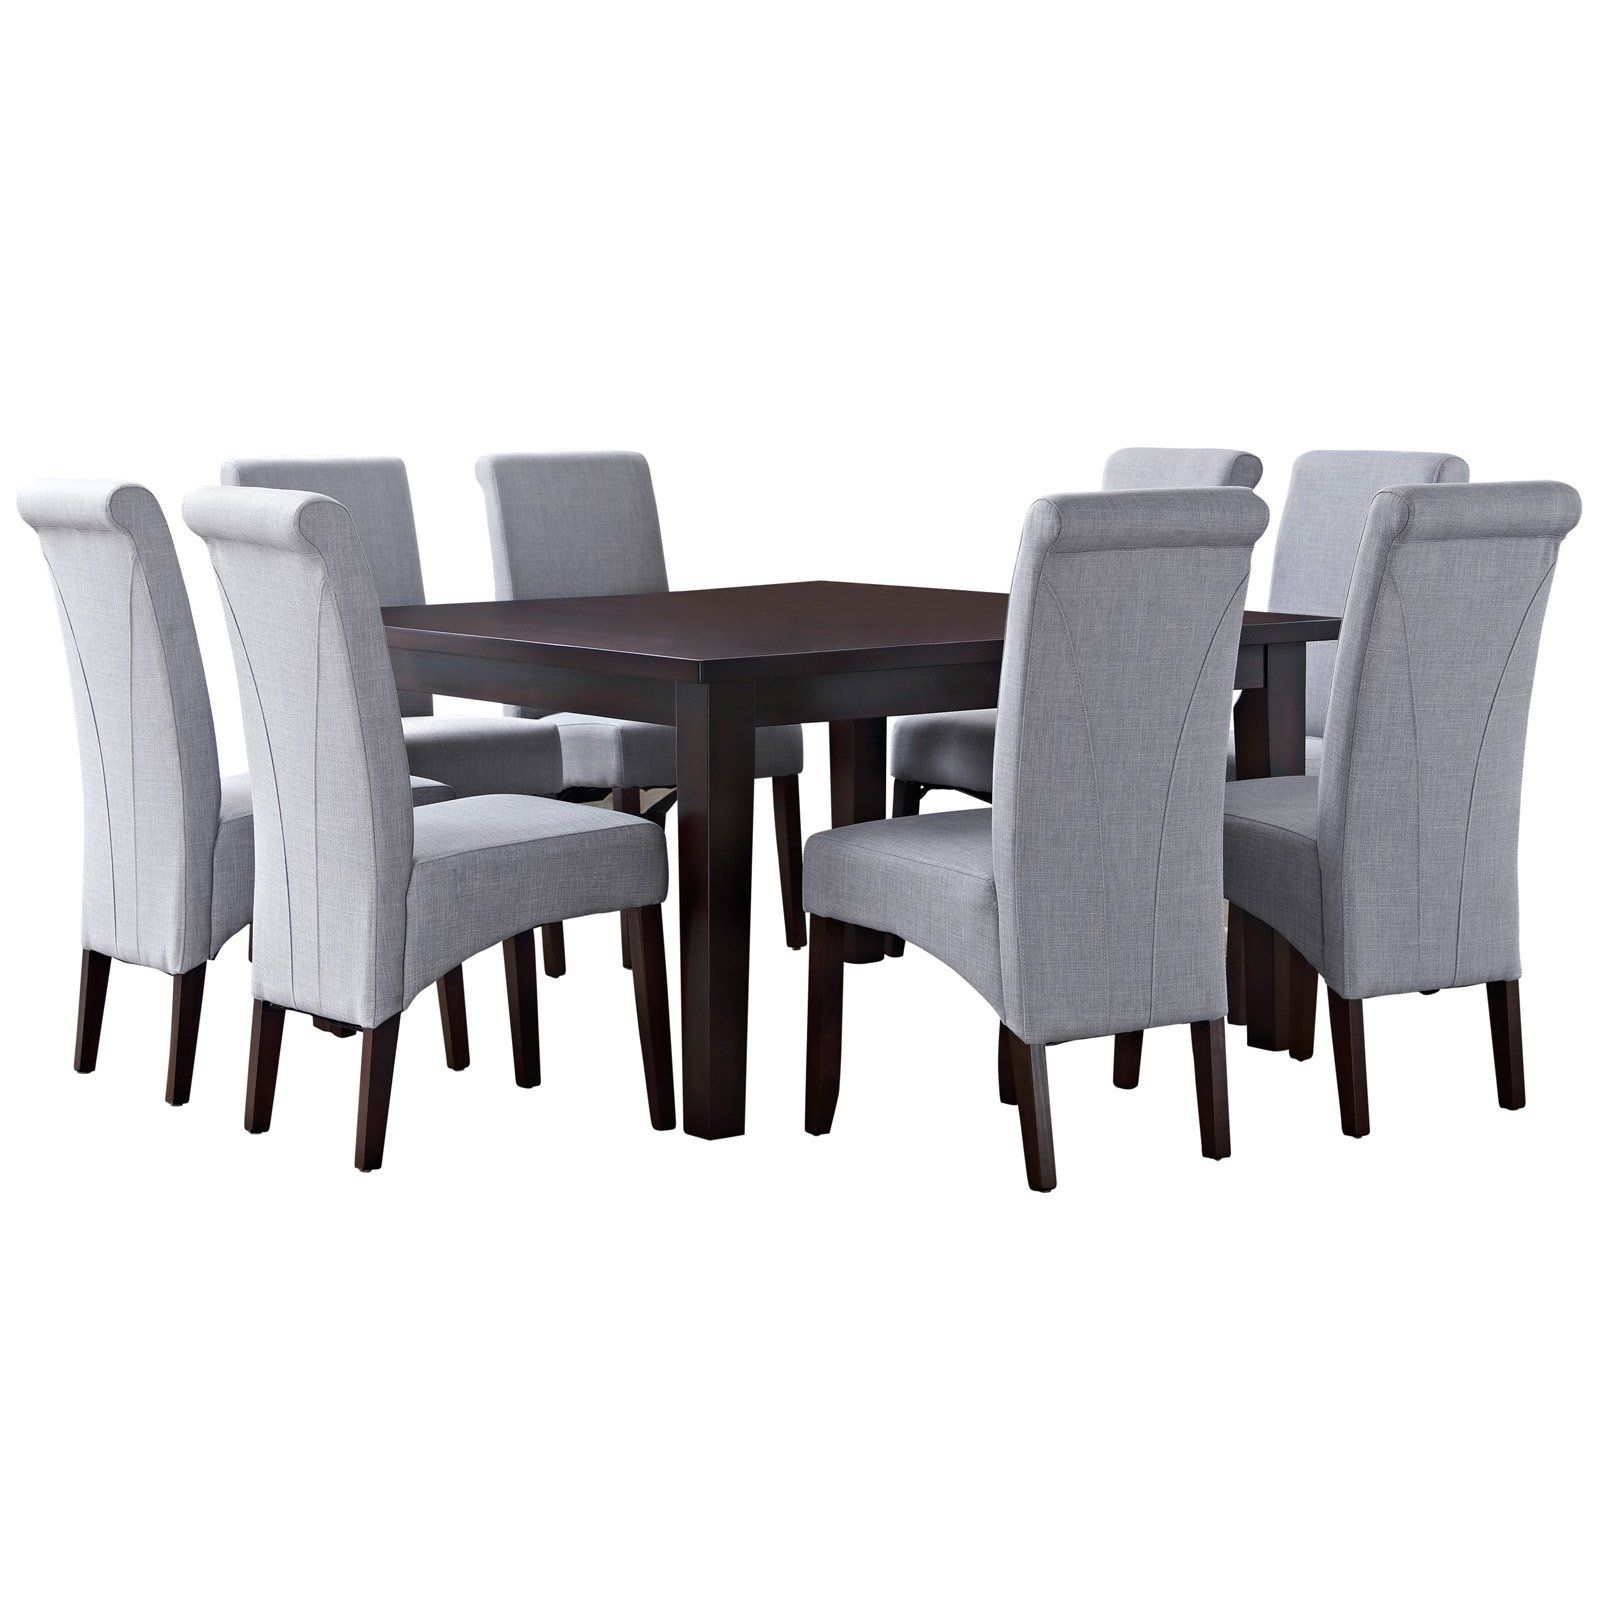 e25008e09184bd Simpli Home Avalon 9 Piece Dining Set Dove Gray Linen | Products en ...